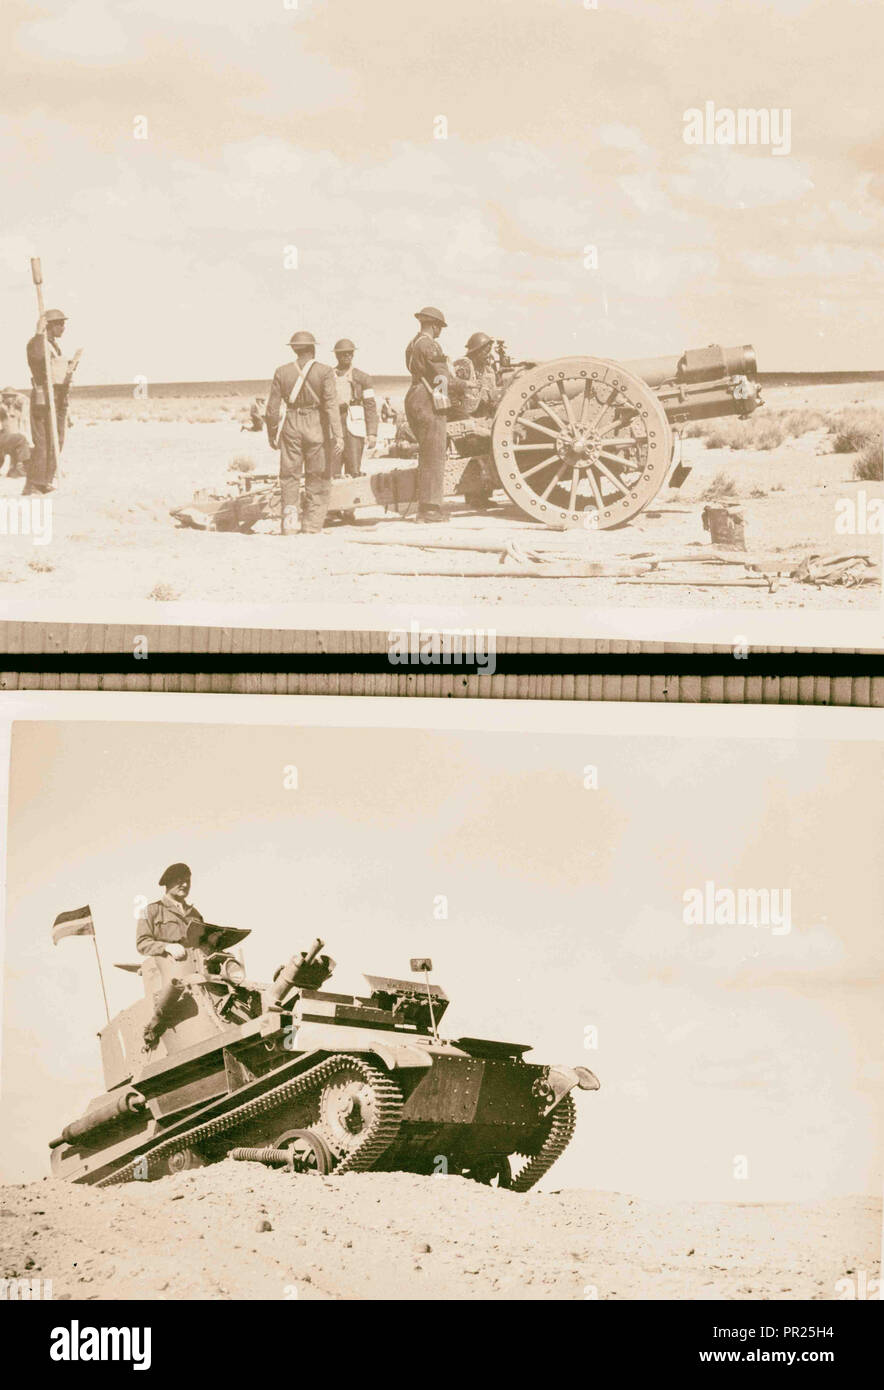 British military copies. 1898, Middle East, Israel and/or Palestine - Stock Image